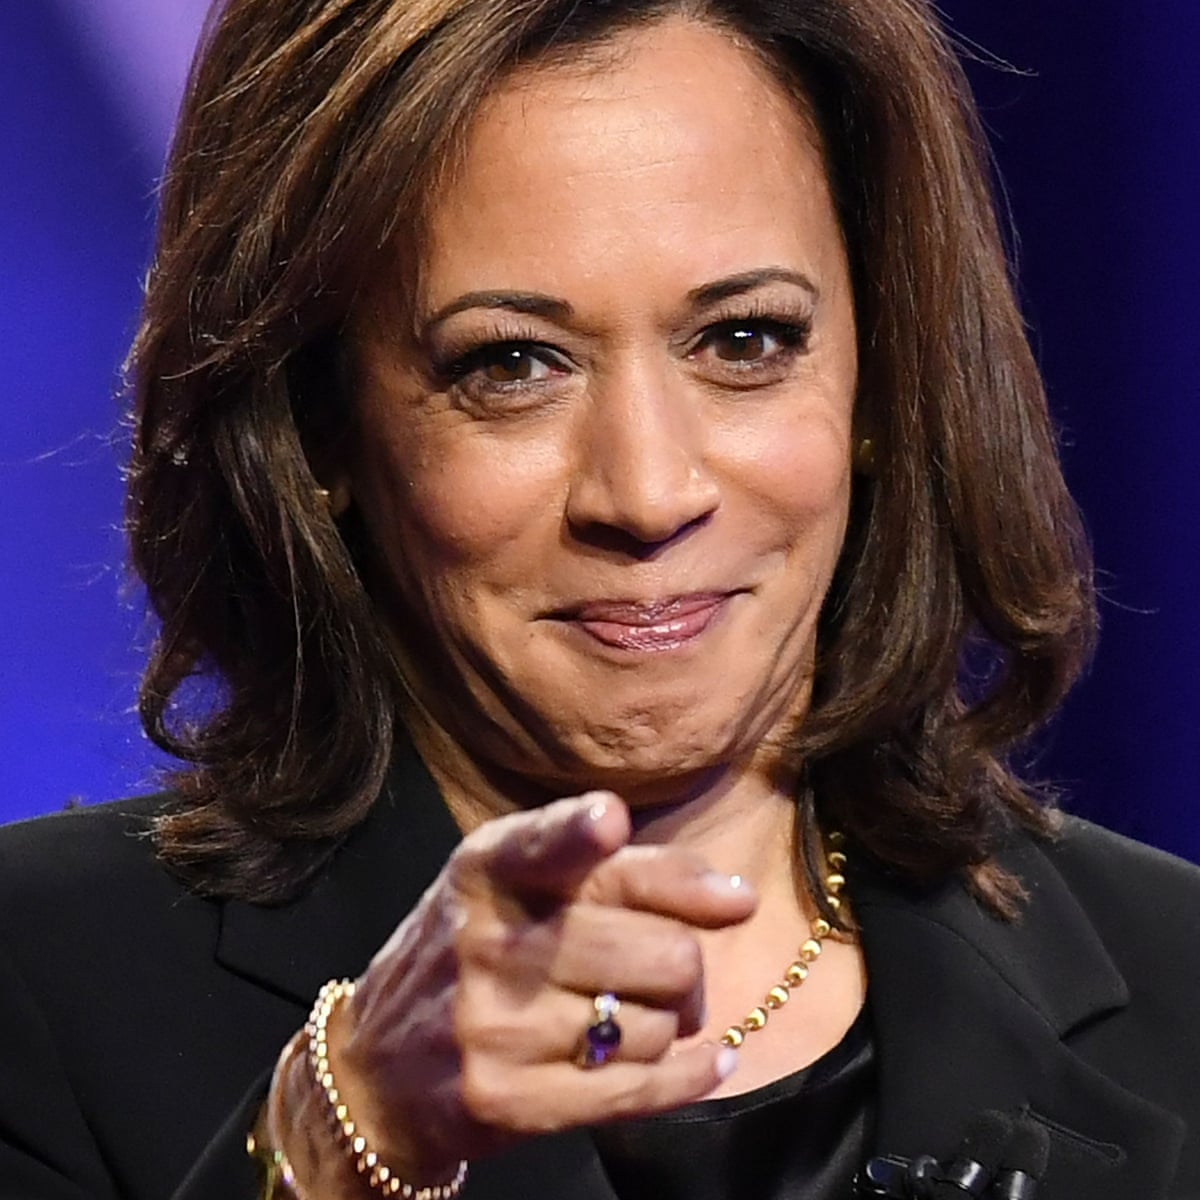 Kamala Harris For President In 2024 This Might Be Joe Biden S Thinking Martin Kettle Opinion The Guardian